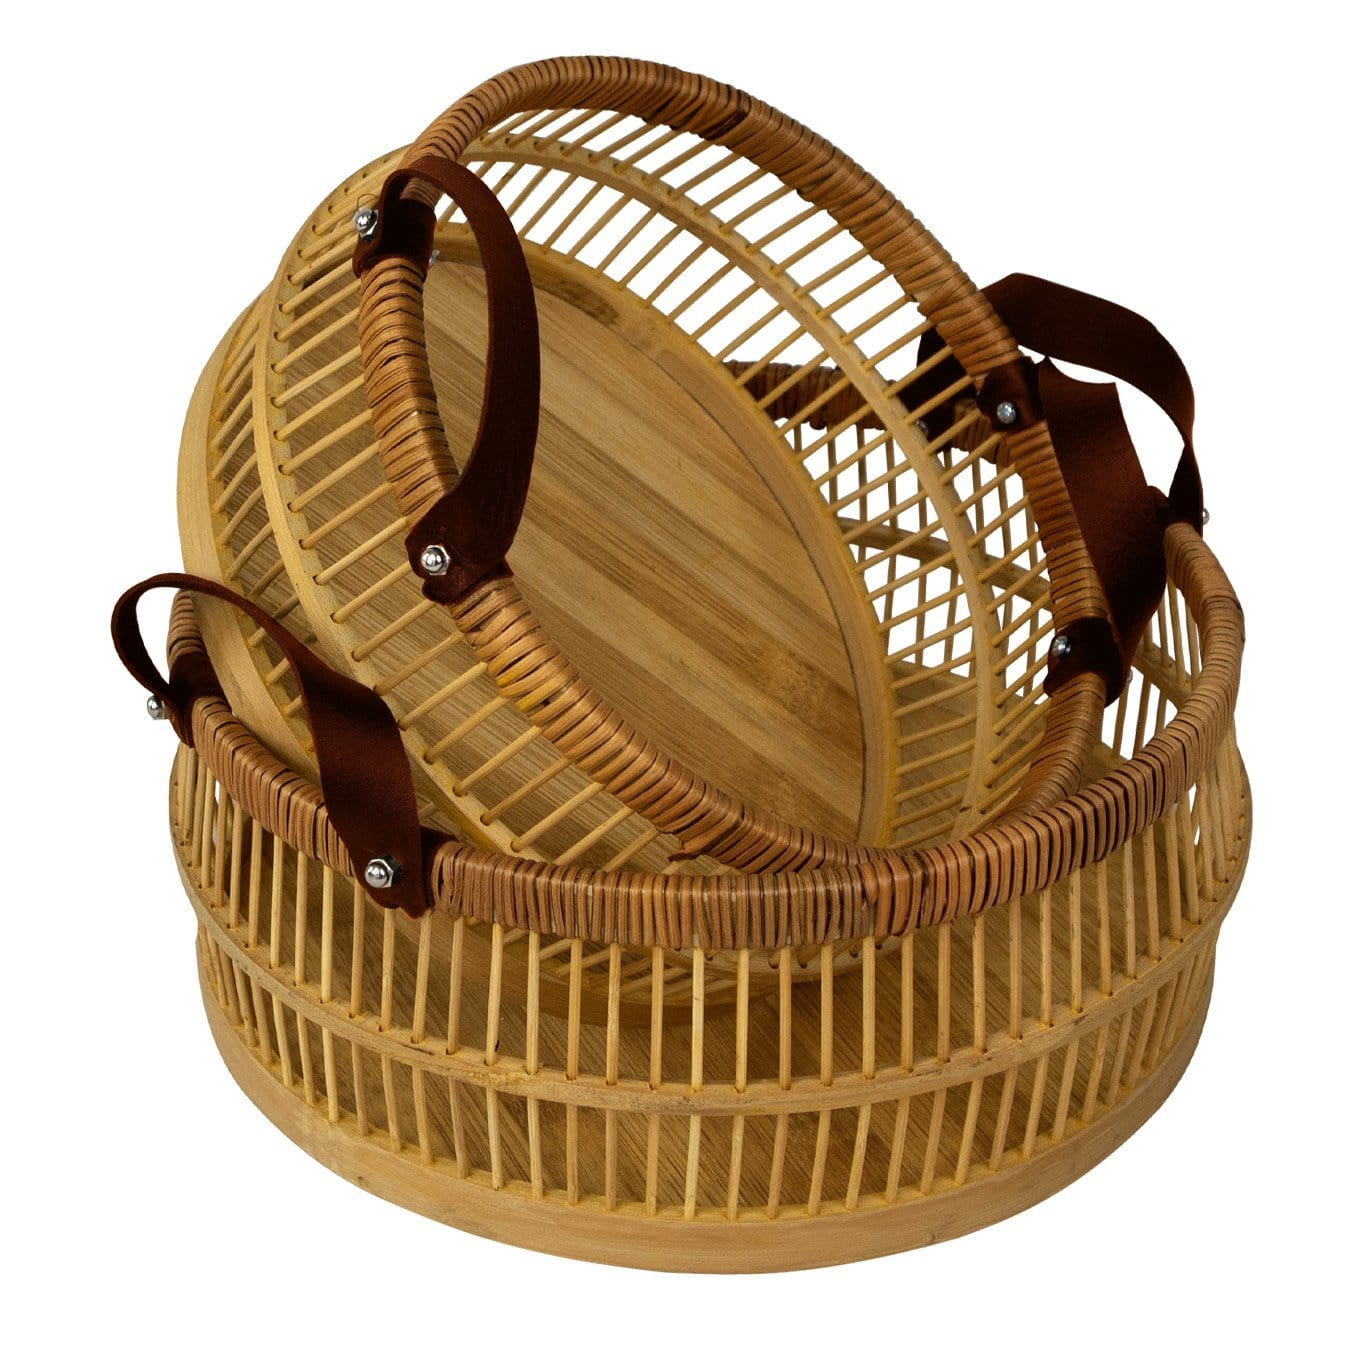 Made Terra Bamboo Basket Bamboo Storage Basket Bin with Leather Handles | HandWoven Decorative Basket Organizer, Hamper